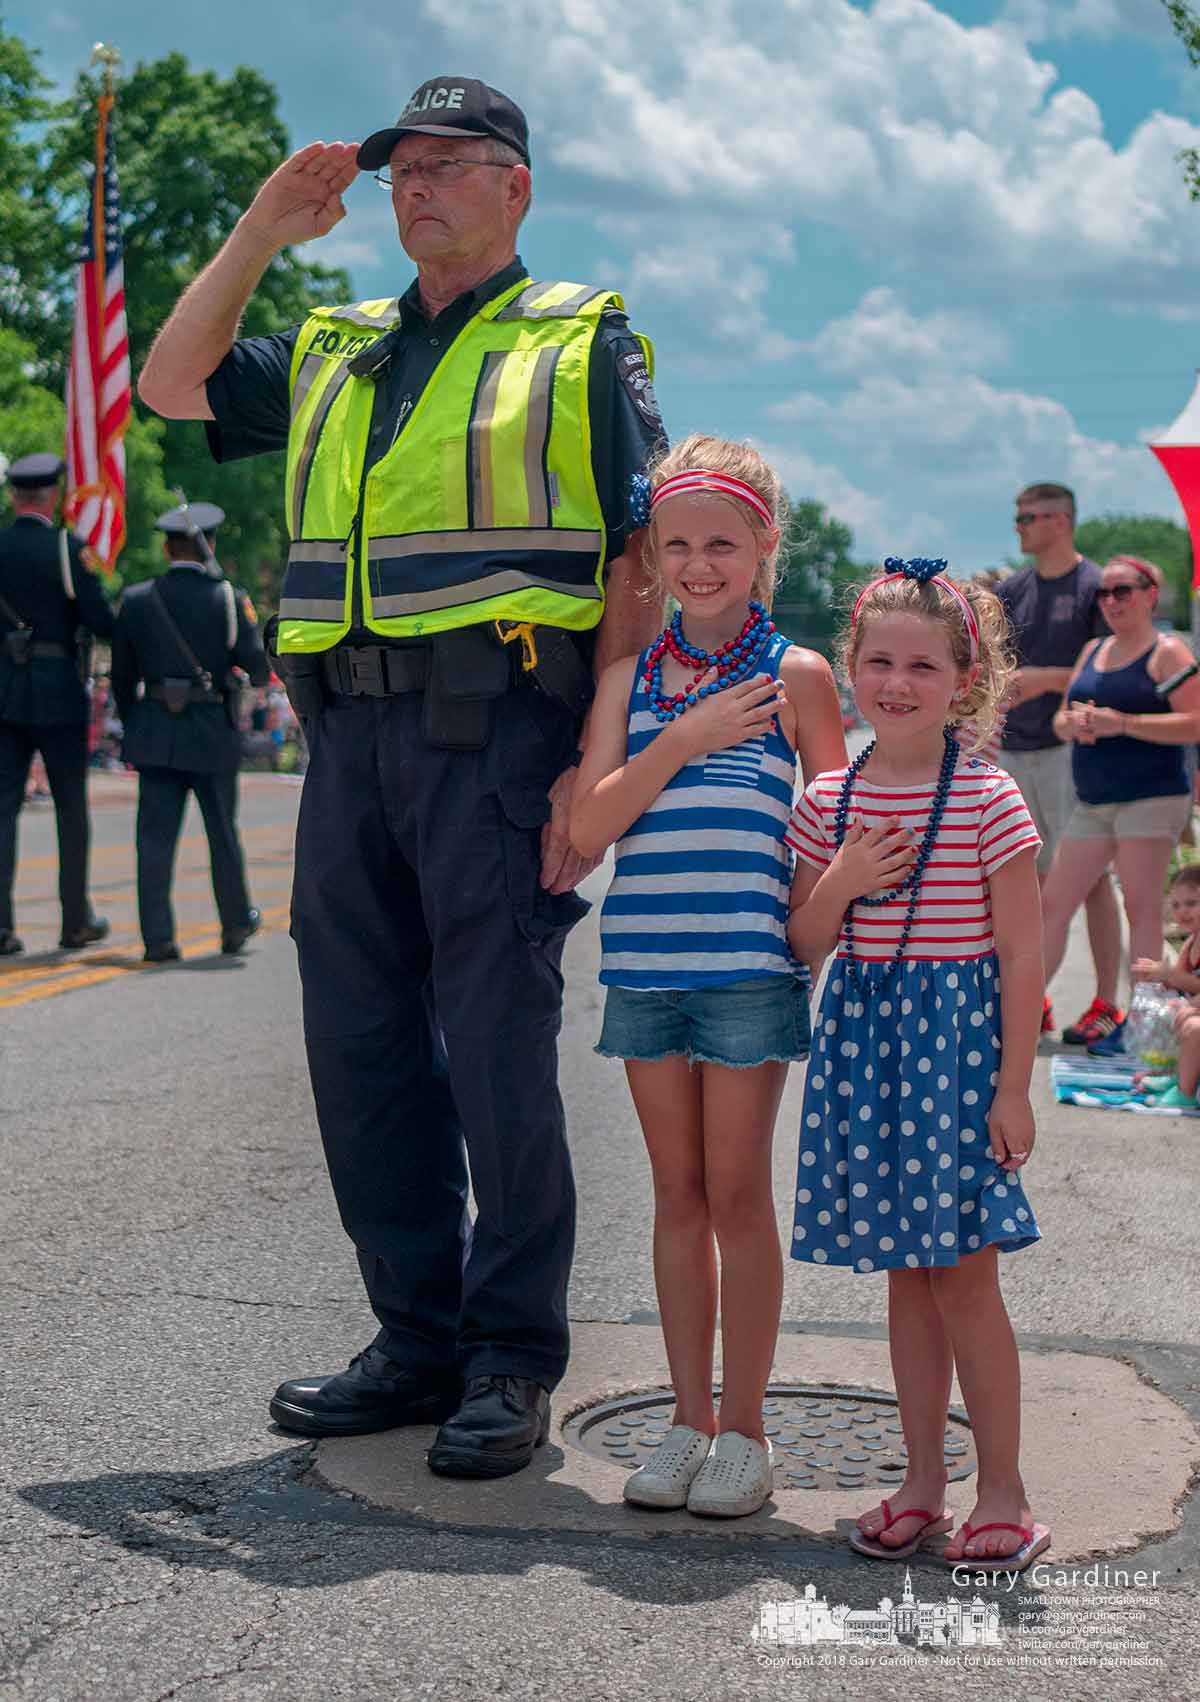 Westerville Reserve Police Officer Ted Bretthauer with two young girls by his side salutes the Honor Guard leading the Westerville July 4th parade. My Final Photo for July 4, 2018.